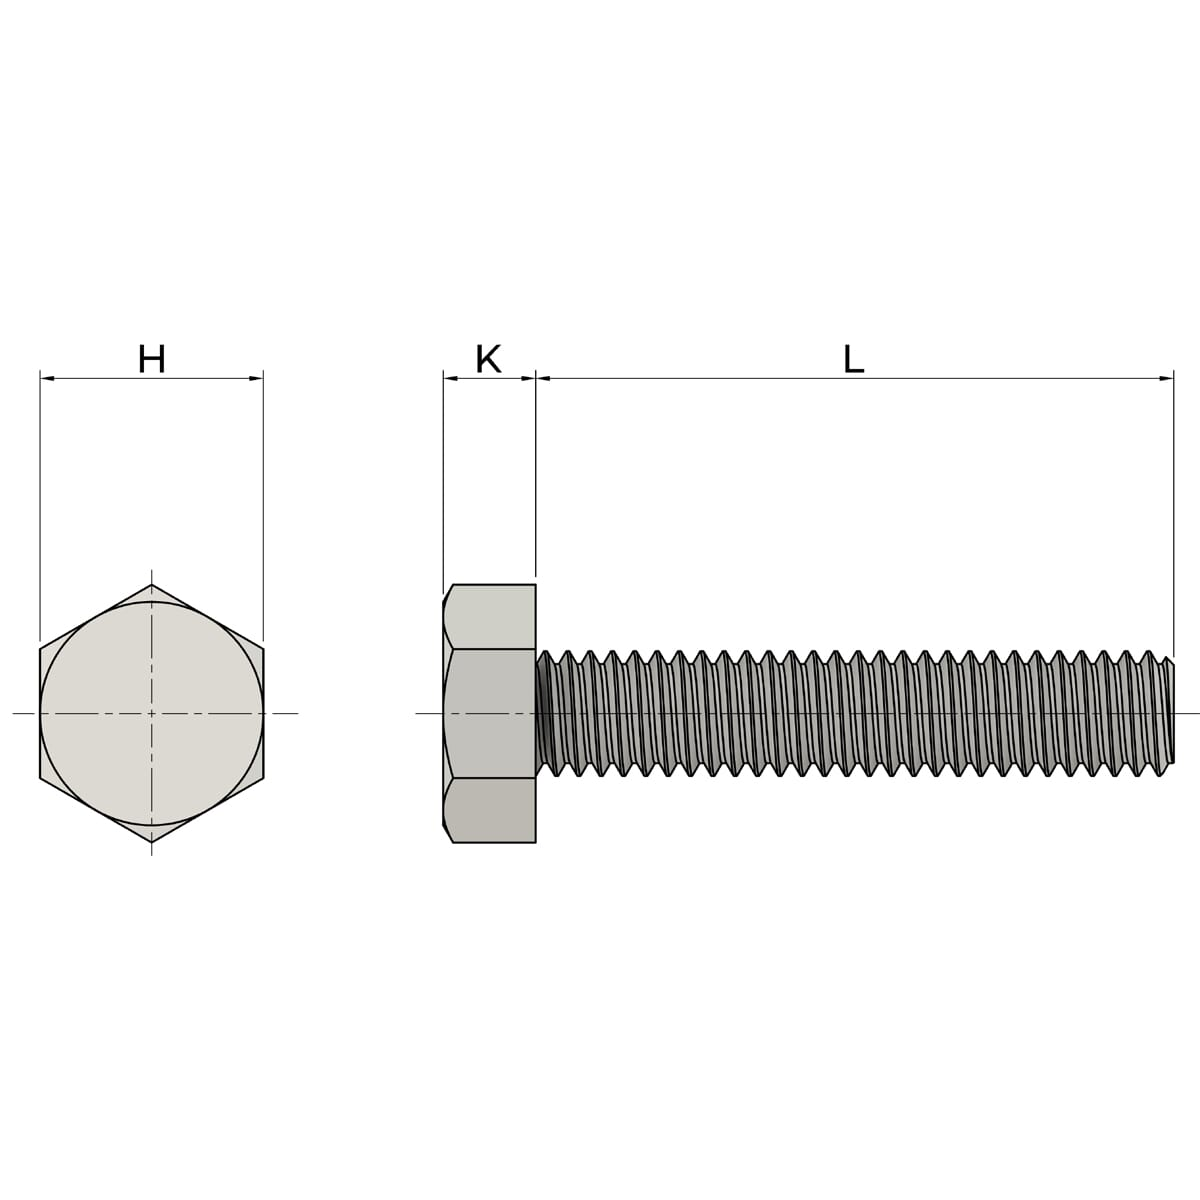 M8 x 170mm Full Thread Hexagon Bolts (DIN 933) - High Tensile Stainless Steel (A4-80) Drawing